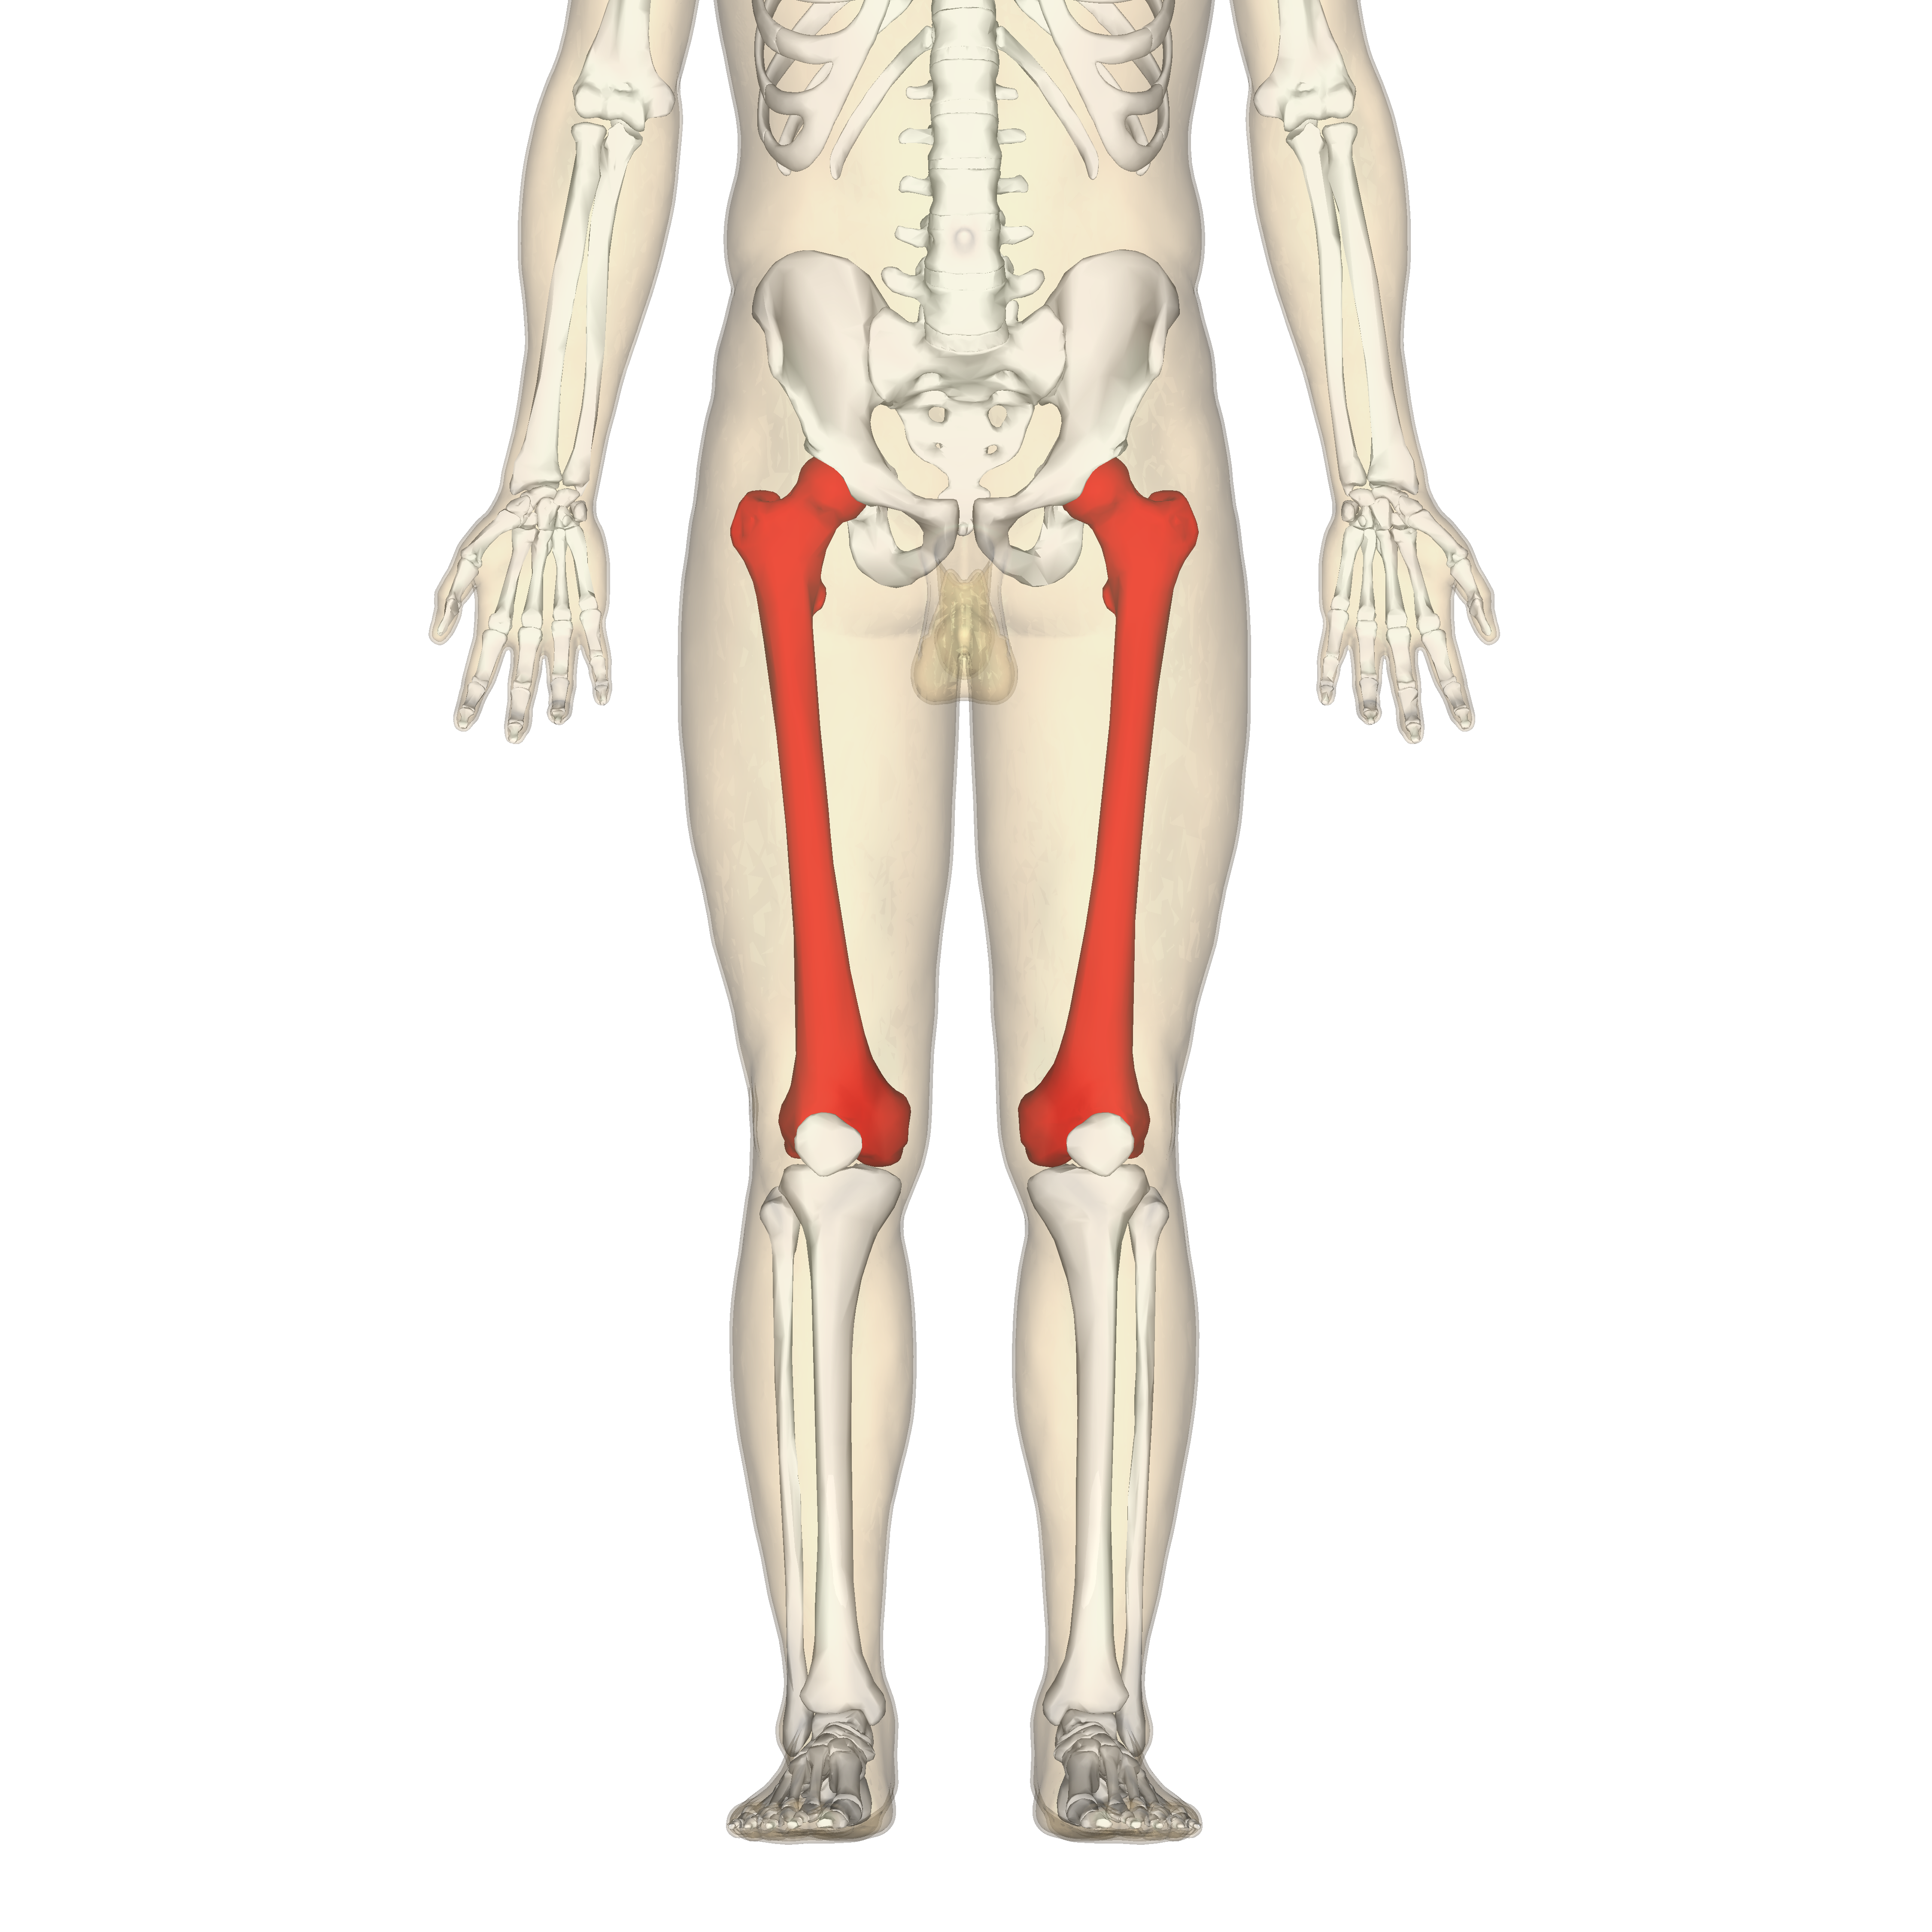 Human Femur Position of femur (shown in